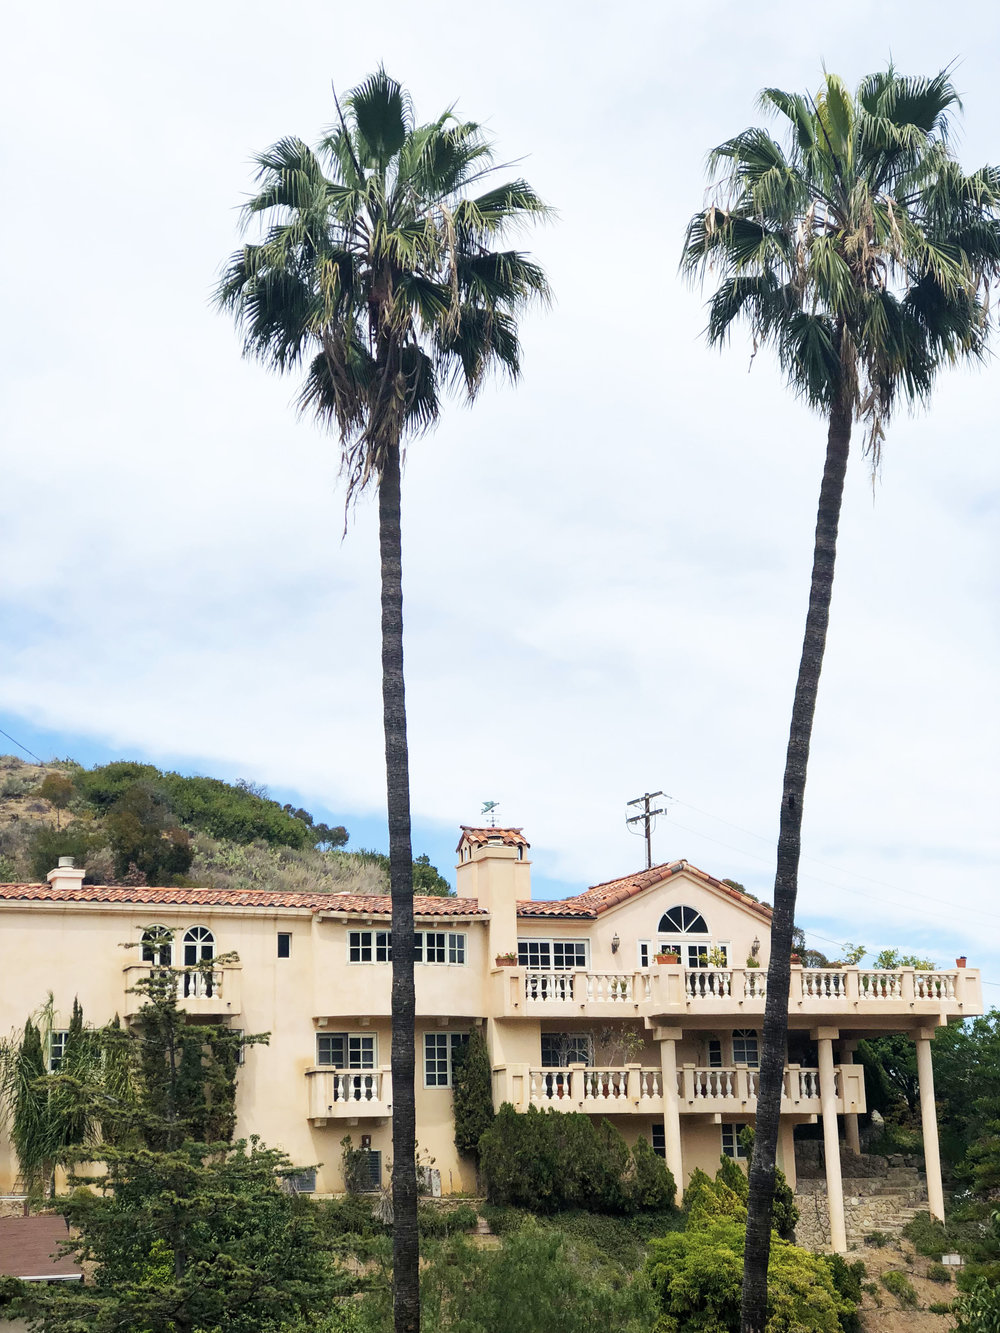 One of the beautiful homes on the island